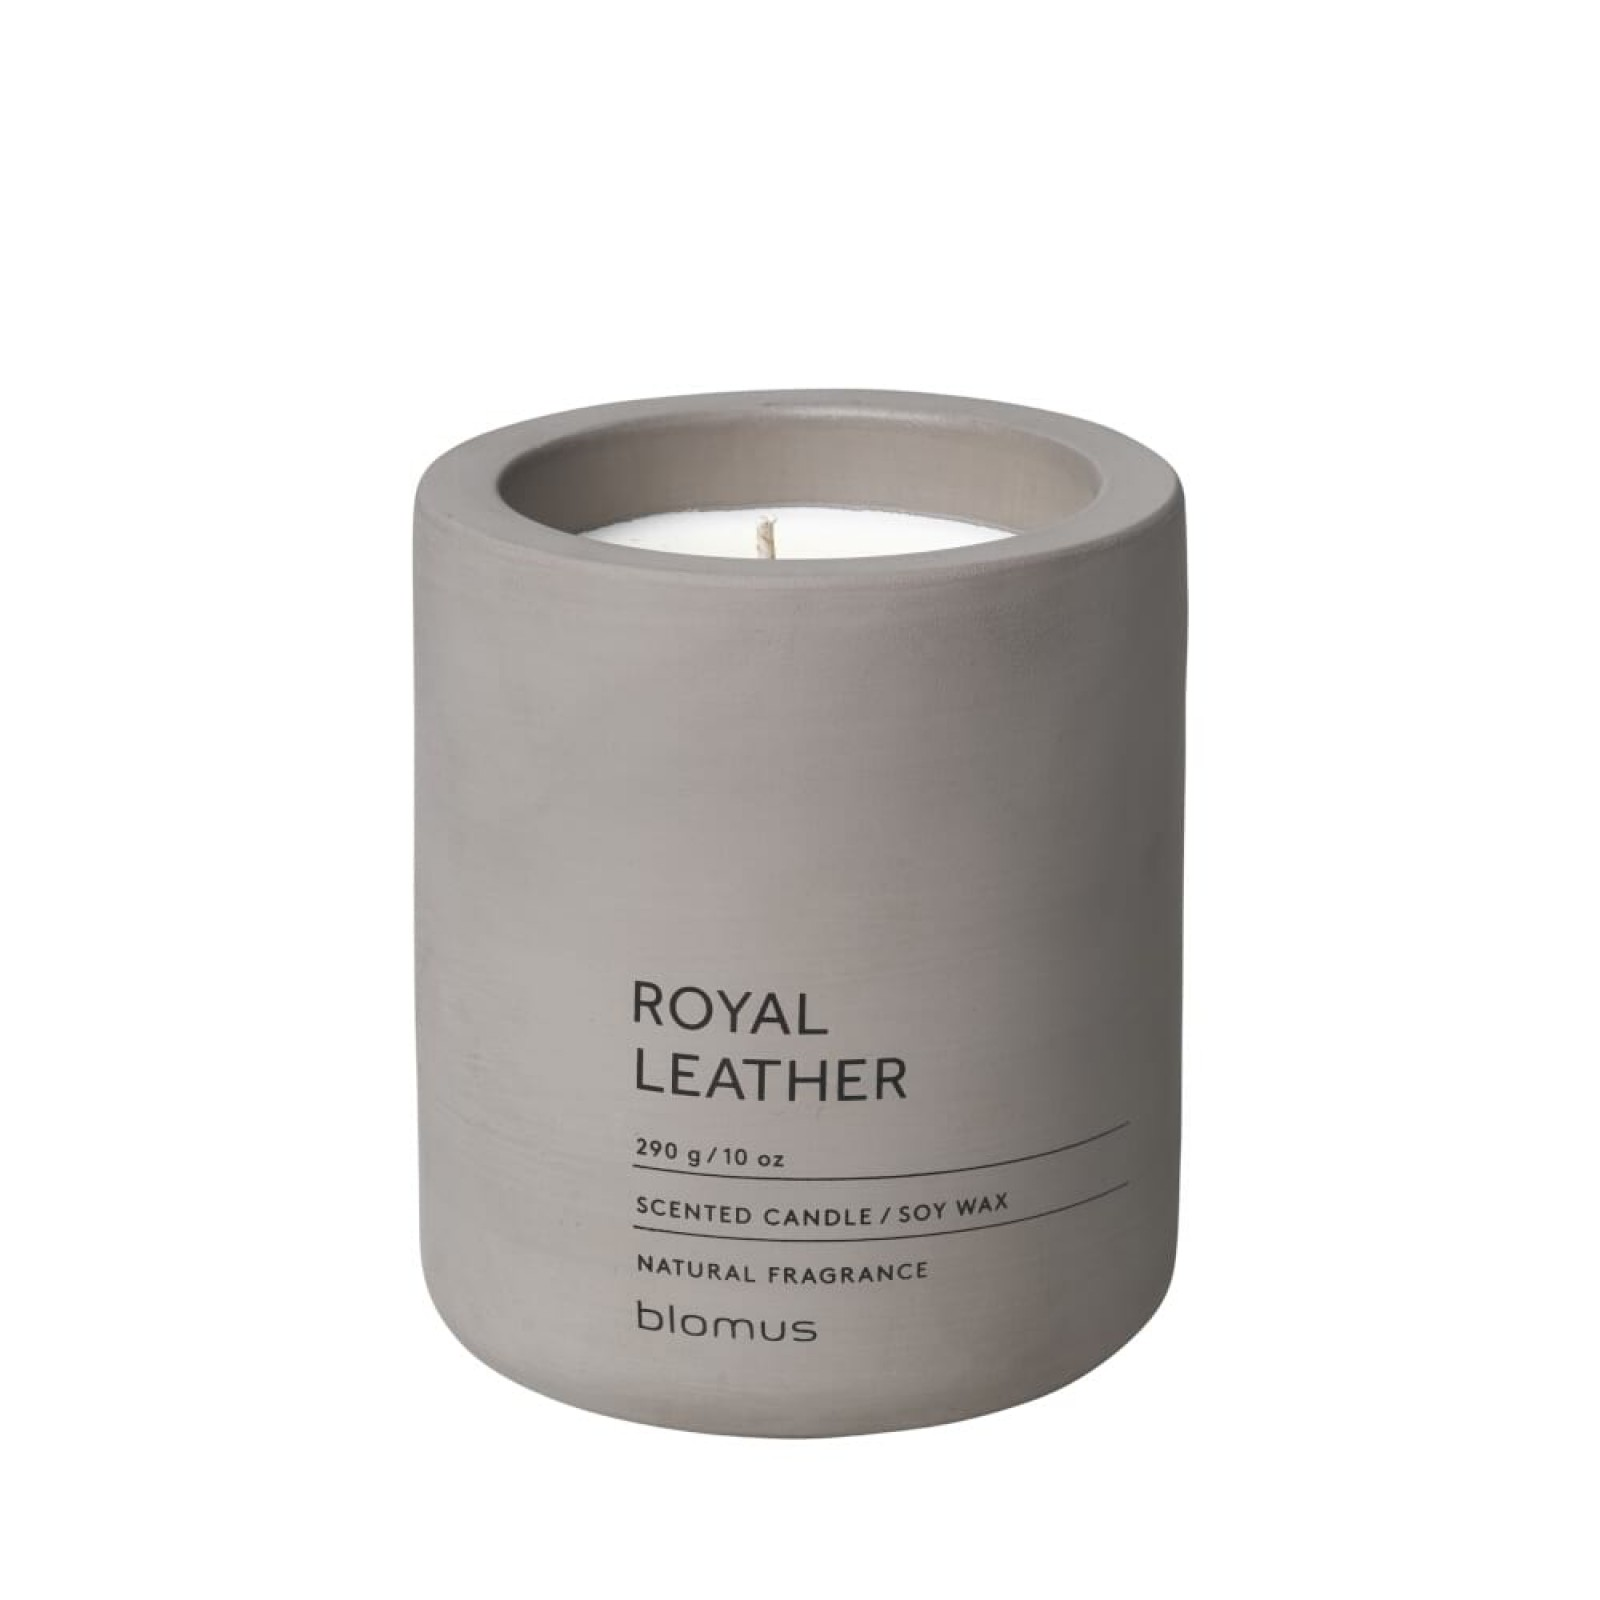 Scented Candle FRAGA L Royal Leather - Blomus